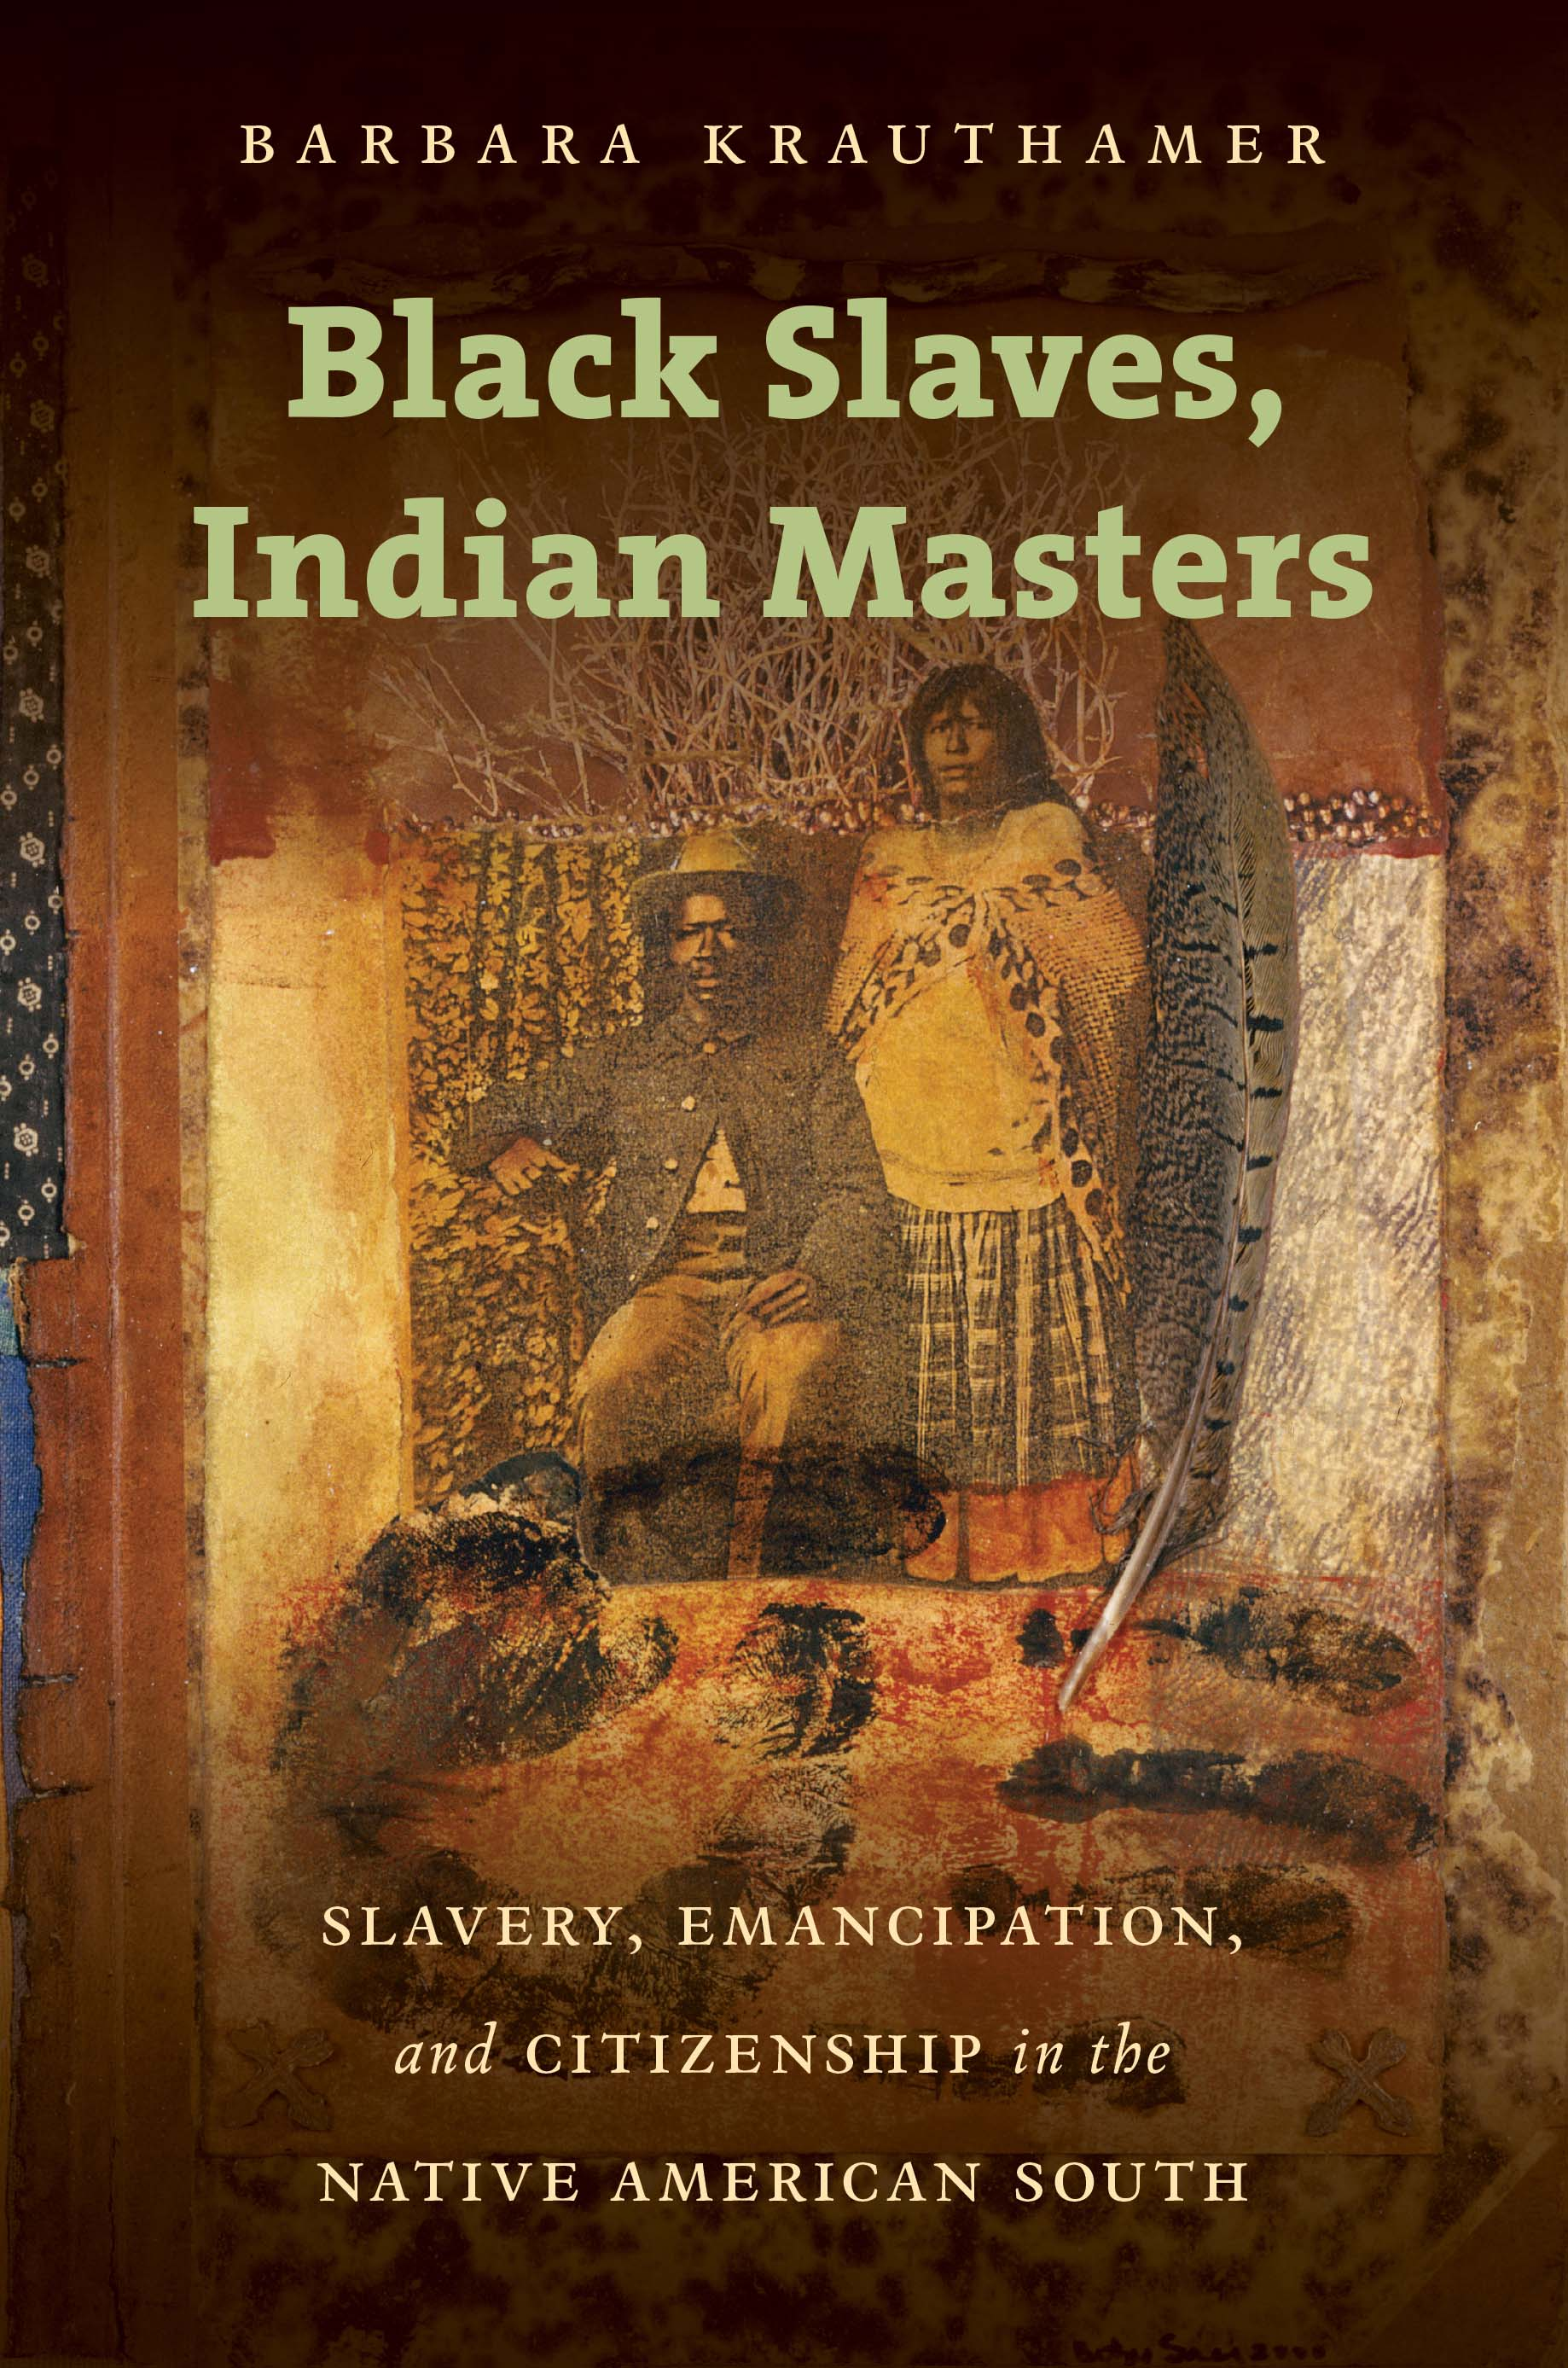 slavery in the literature of the black diaspora Visualising slavery: art across the african diaspora  of transatlantic slavery across the black diaspora  case in literature' that.